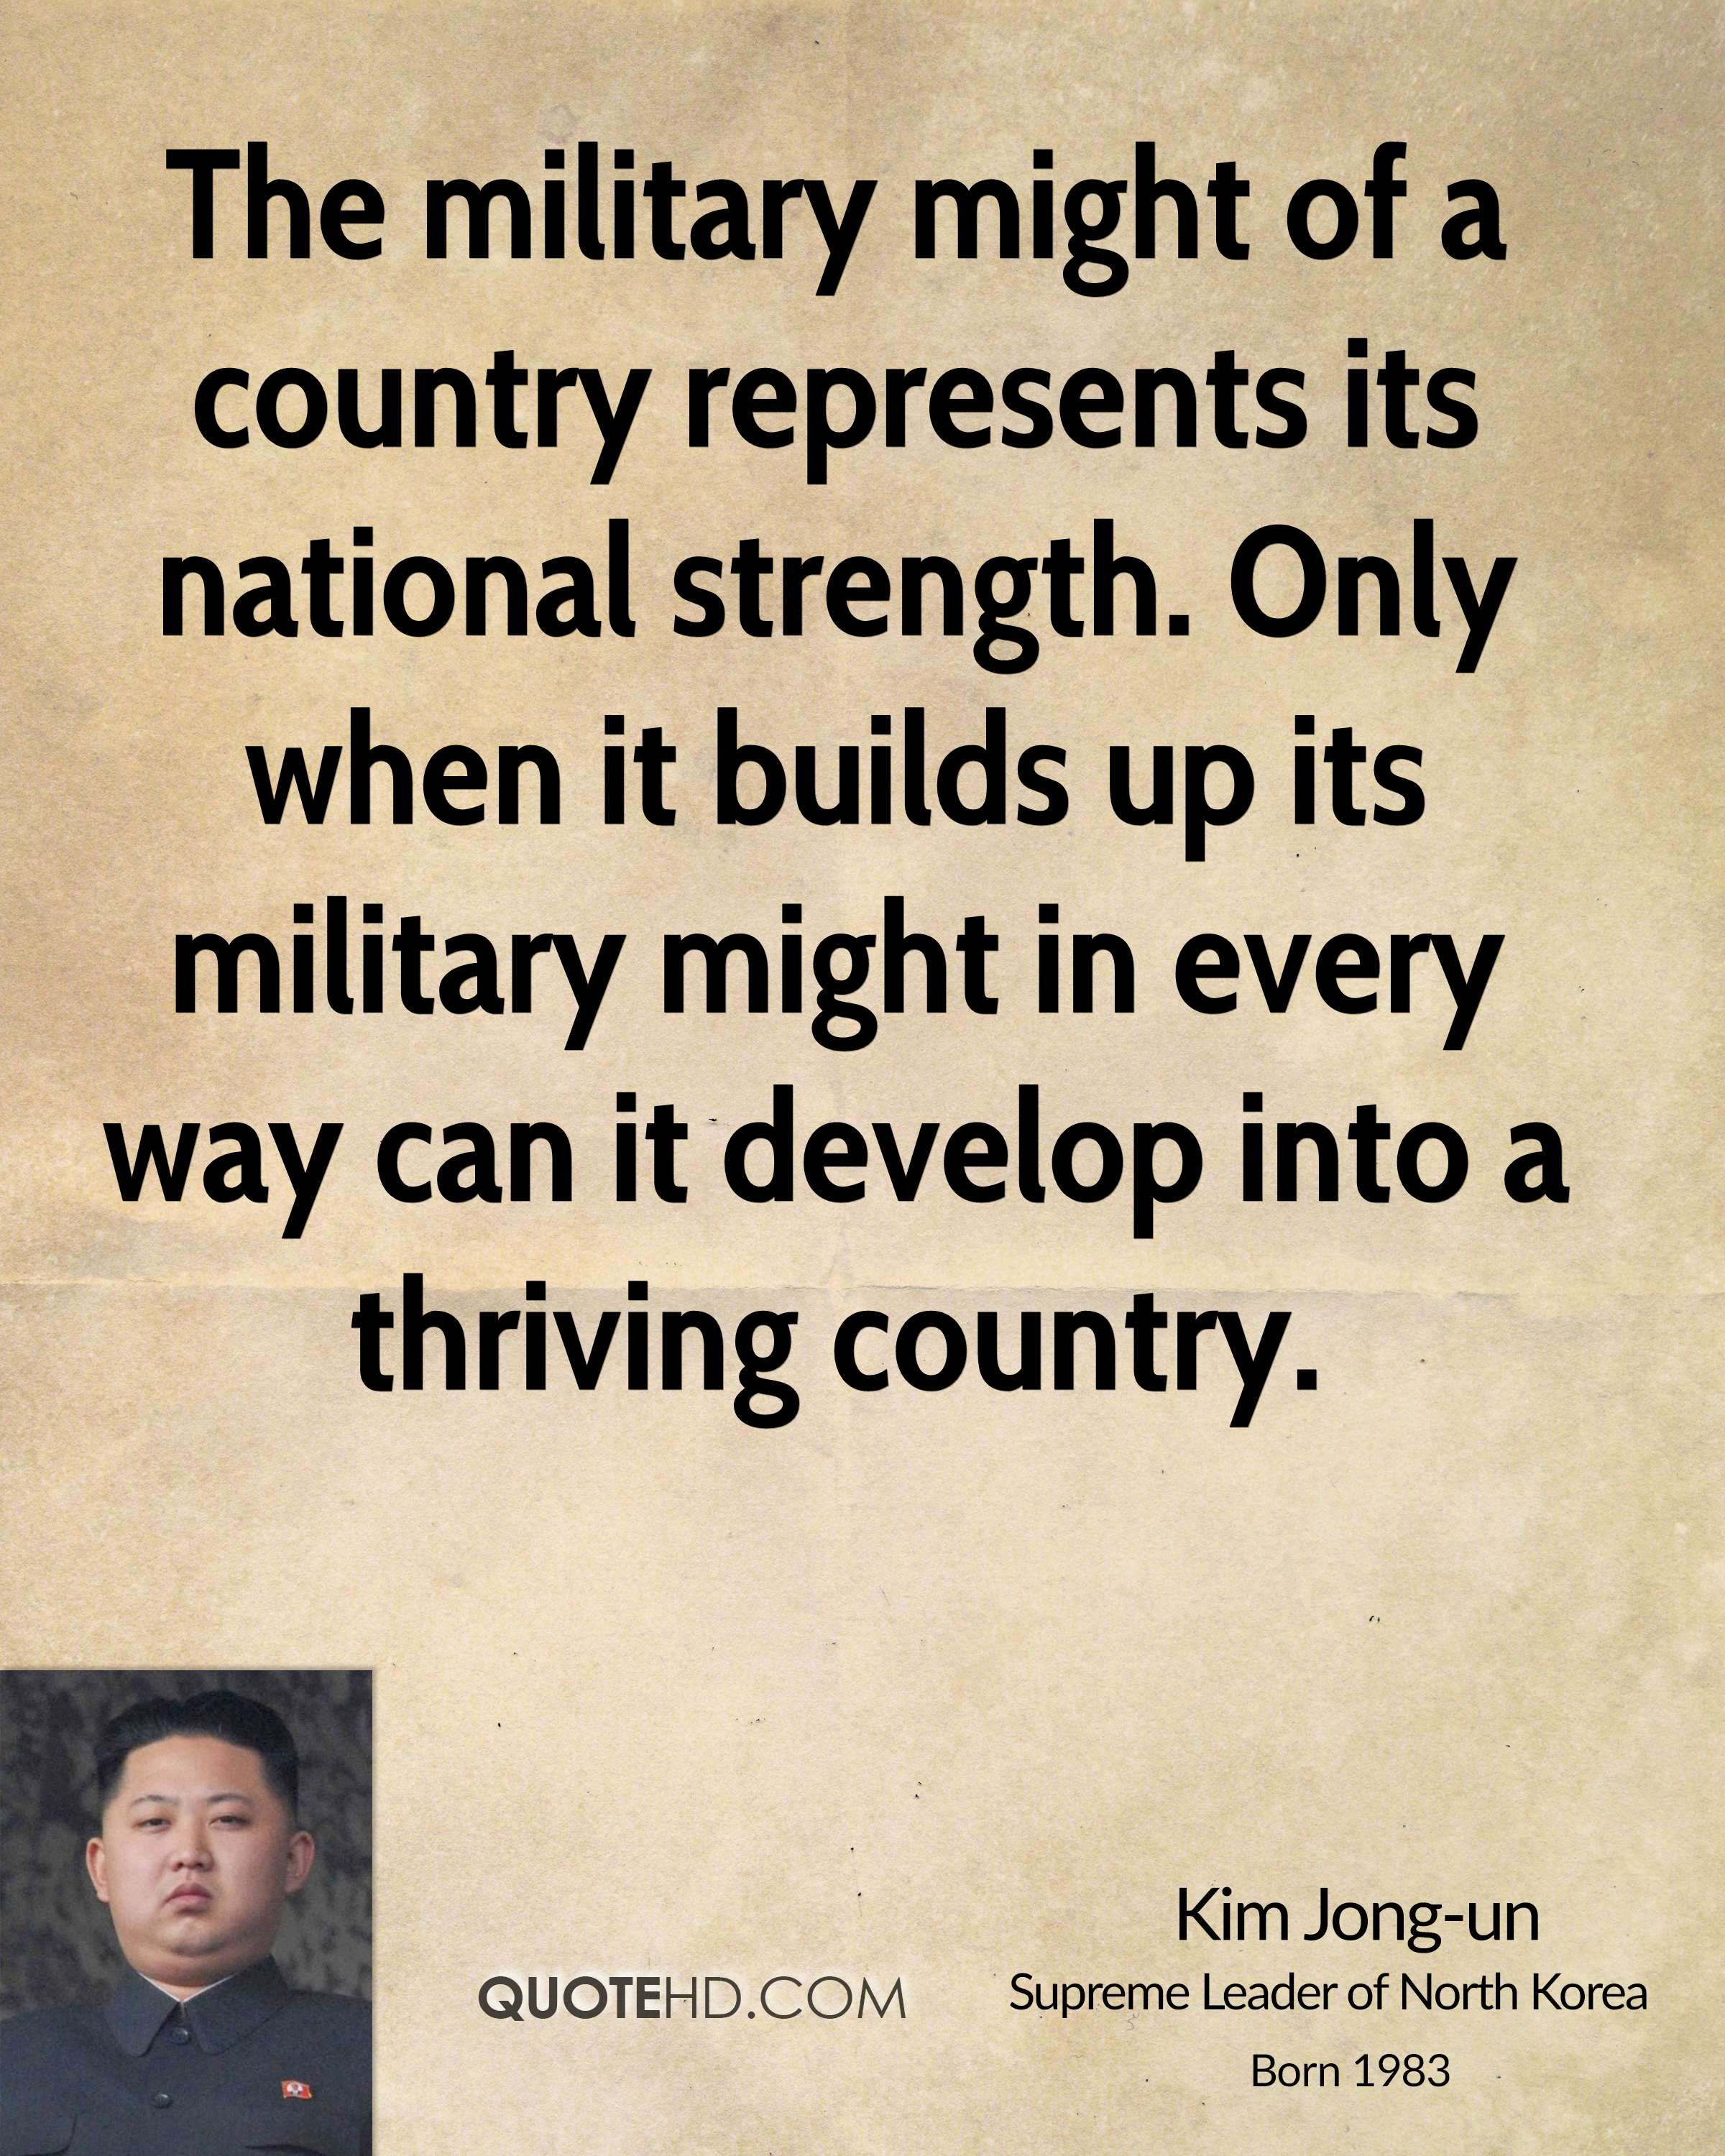 The military might of a country represents its national strength. Only when it builds up its military might in every way can it develop into a thriving country.